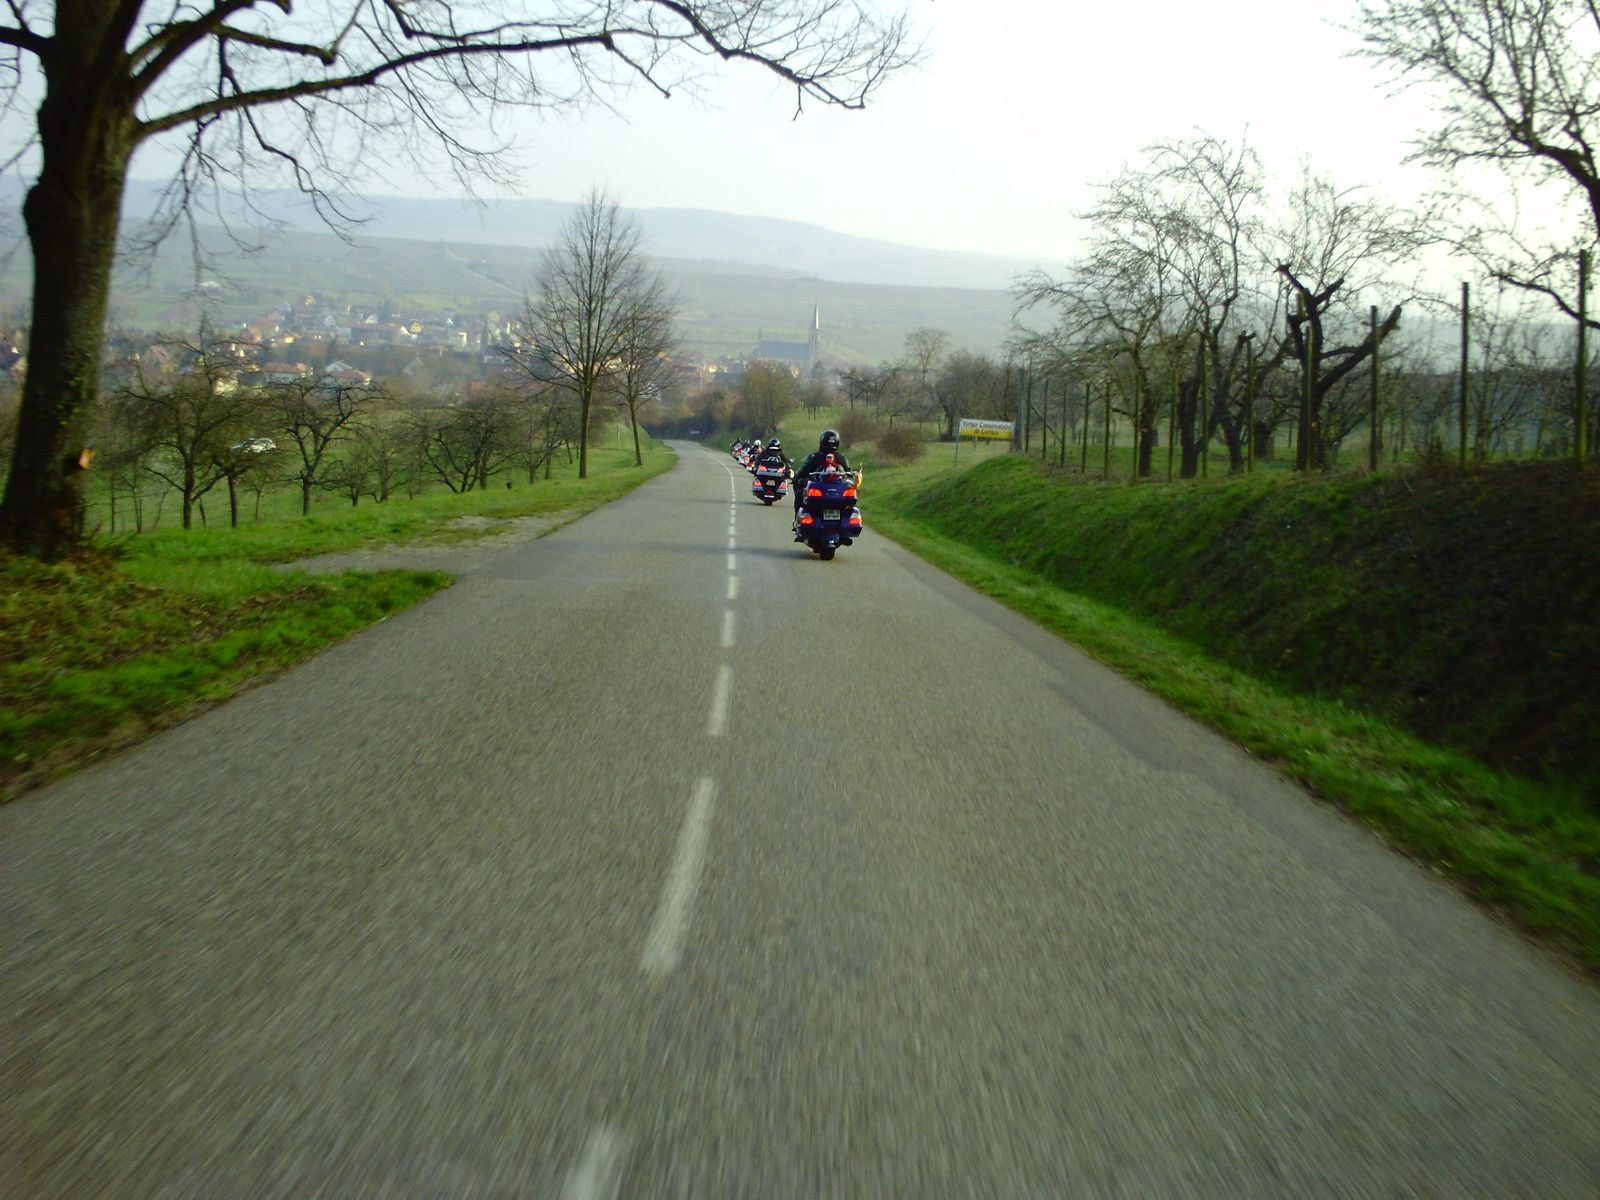 Goldwing - Ballade du 1er jour du printemps 2016